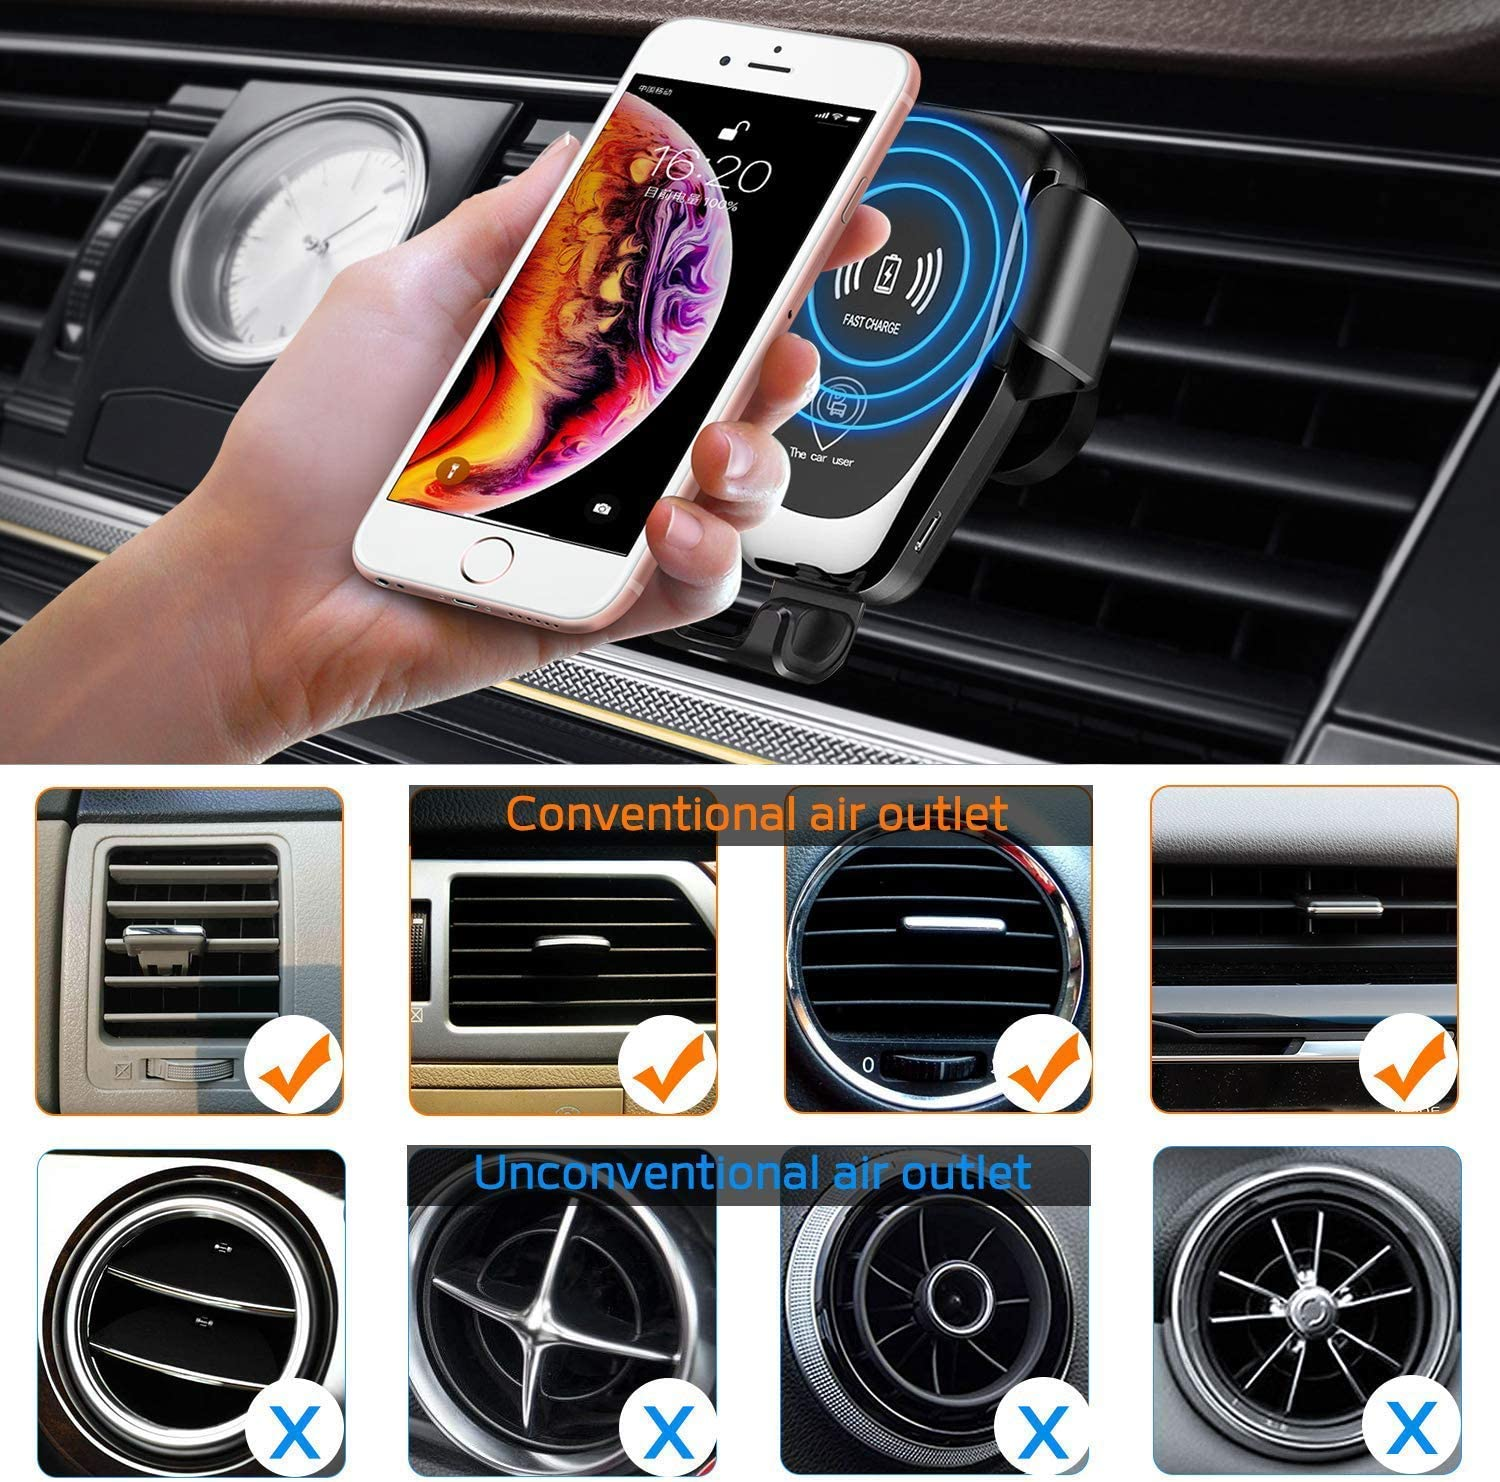 10W Fast Charging for Samsung Galaxy S8//S9//S7//Note 8 7.5W Compatible with iPhone Xs//XR//X//8 and Qi Enabled Devices Wireless Charger Car Mount One-Hand Auto Clamping Air Vent Phone Holder